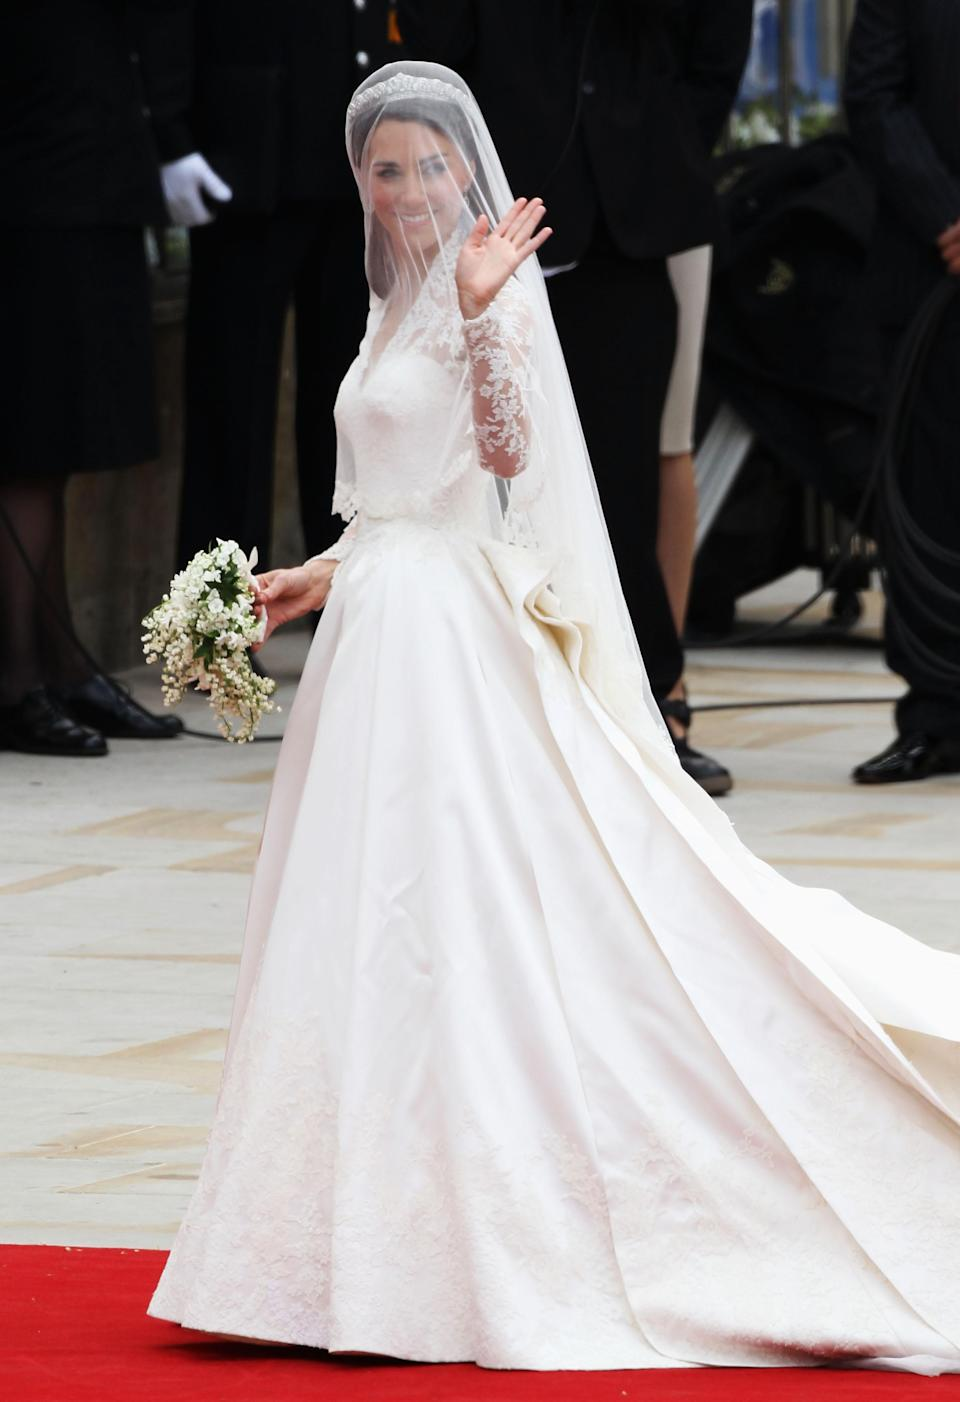 <p>For her big day, the Duchess of Cambridge opted for a lace gown designed by Alexander McQueen's Sarah Burton. The floow-sweeping number incorporated lace, floral motifs and a seriously impressive train. It reportedly cost £250,000 and sparked a mass number of copies. <em>[Photo: Getty]</em> </p>